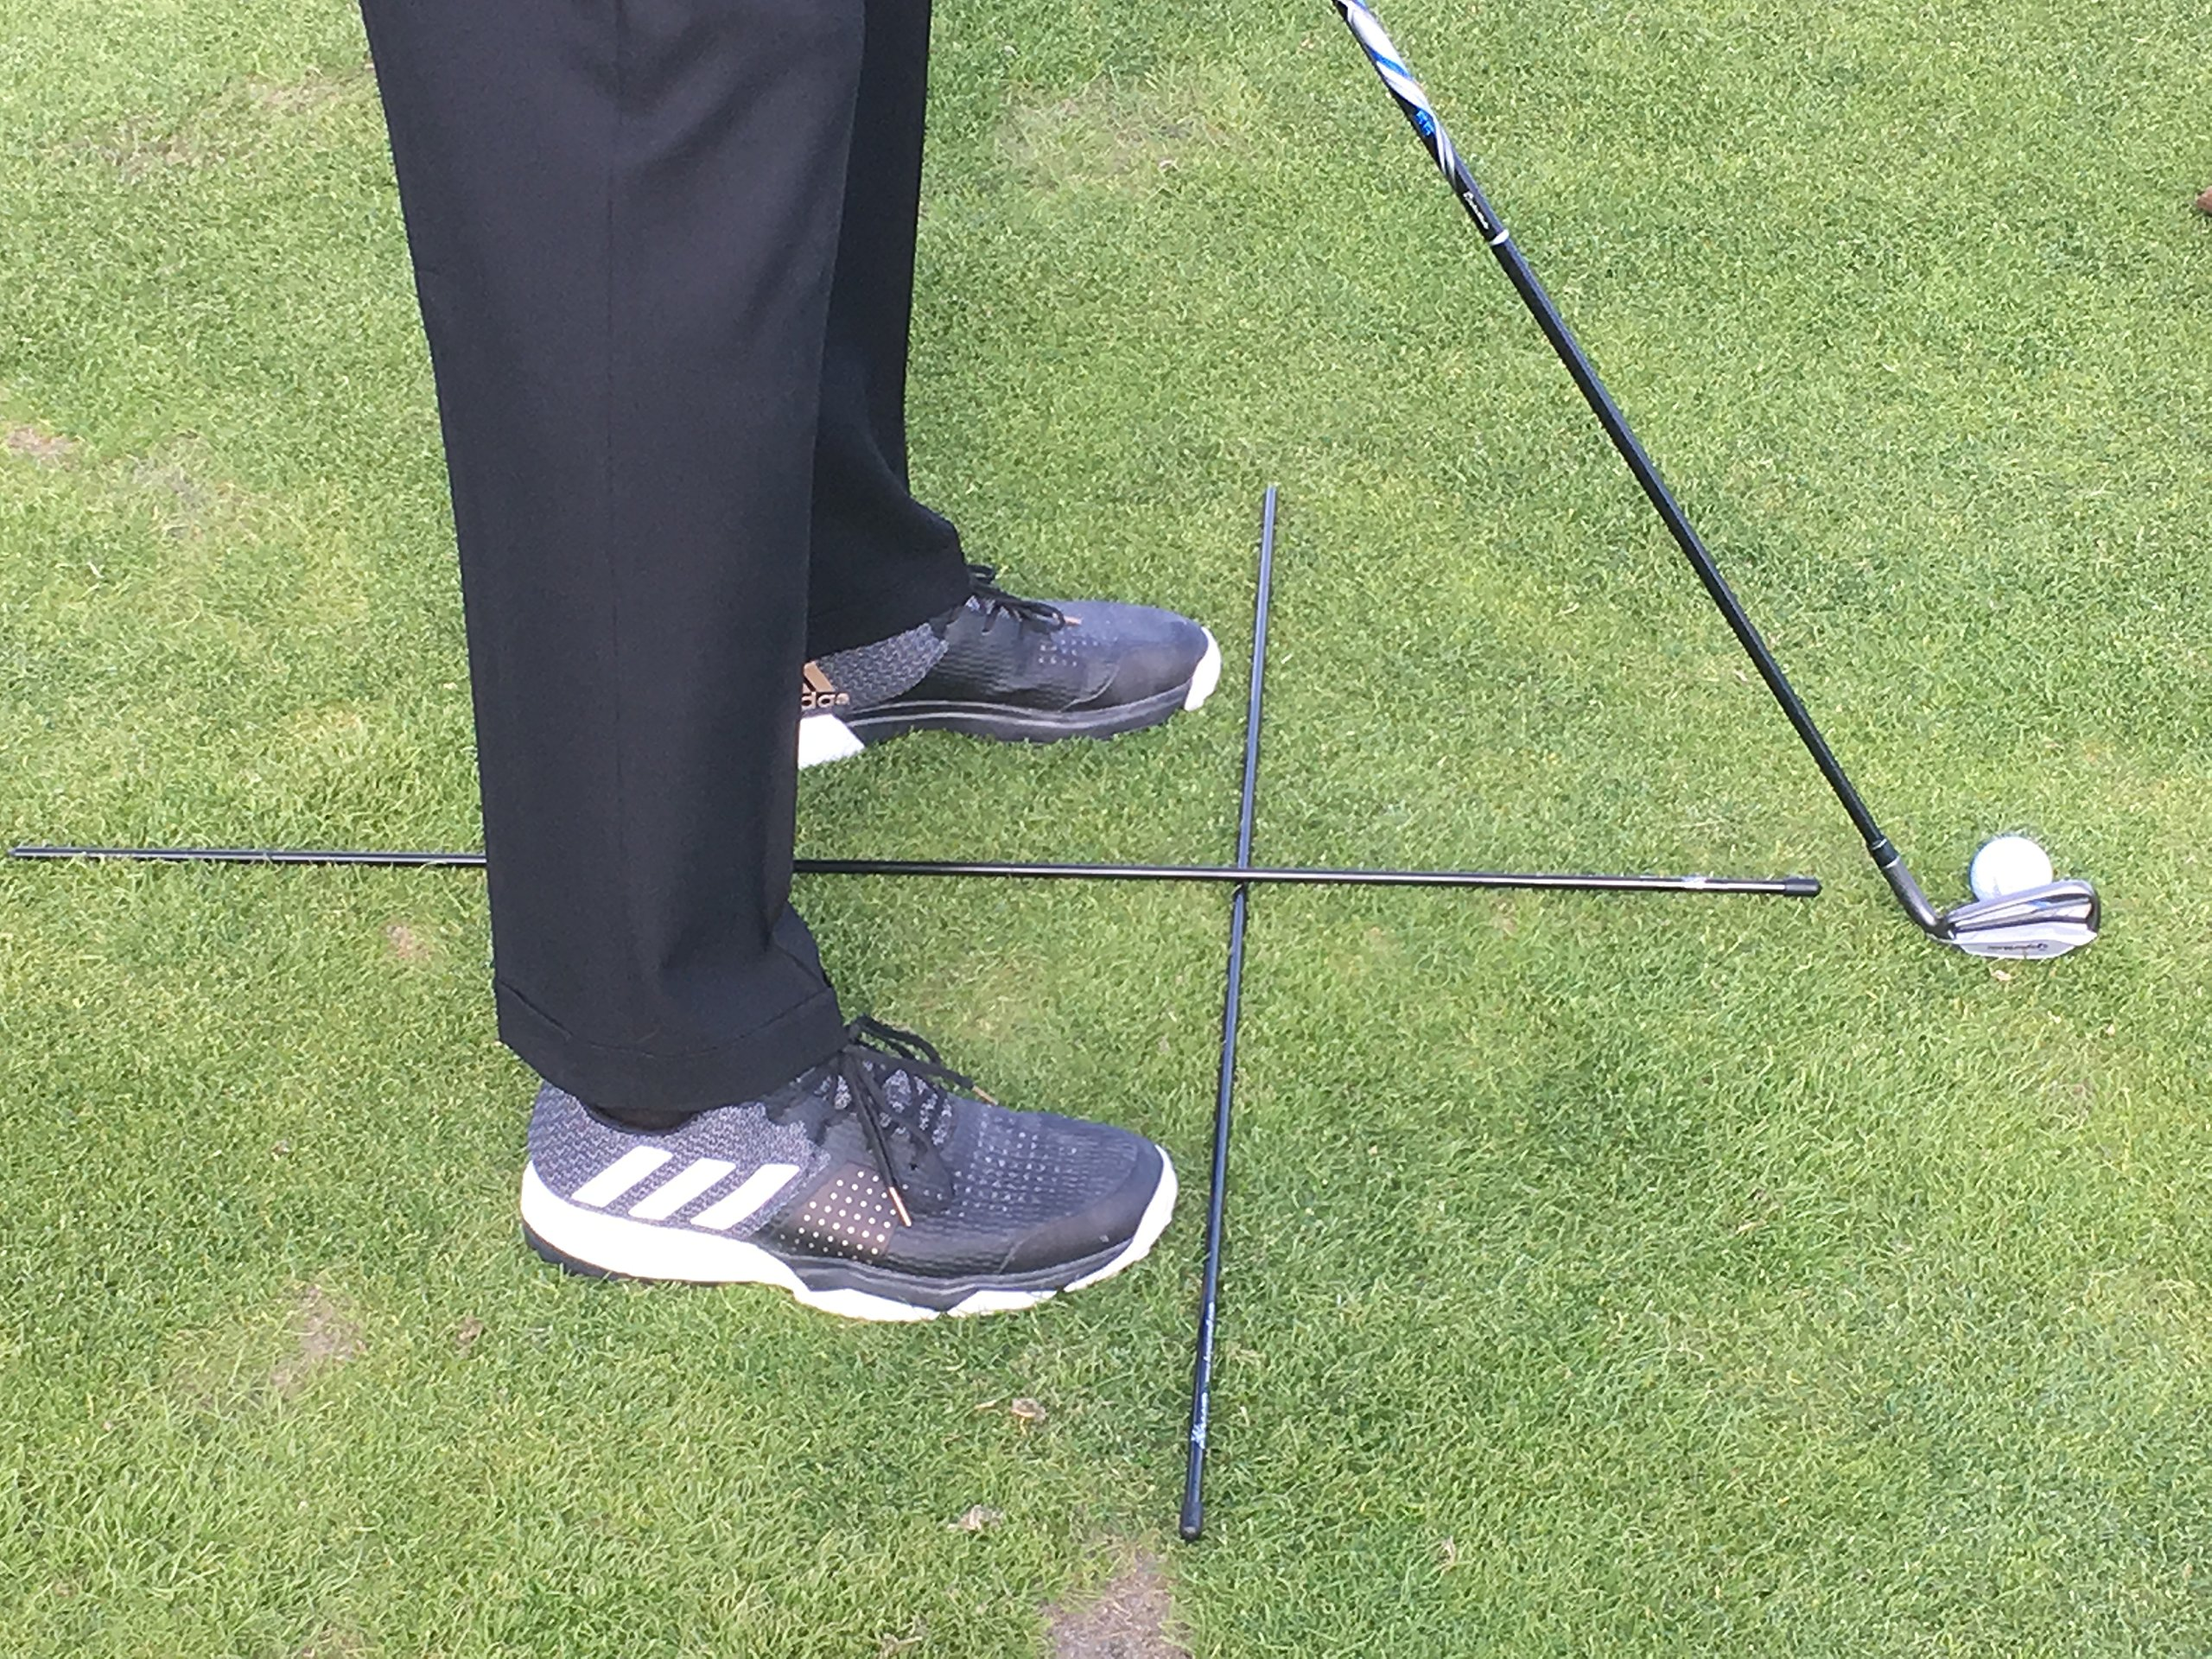 Frogger Golf 40'' Alignment Stick Training Aid by Frogger (Image #4)